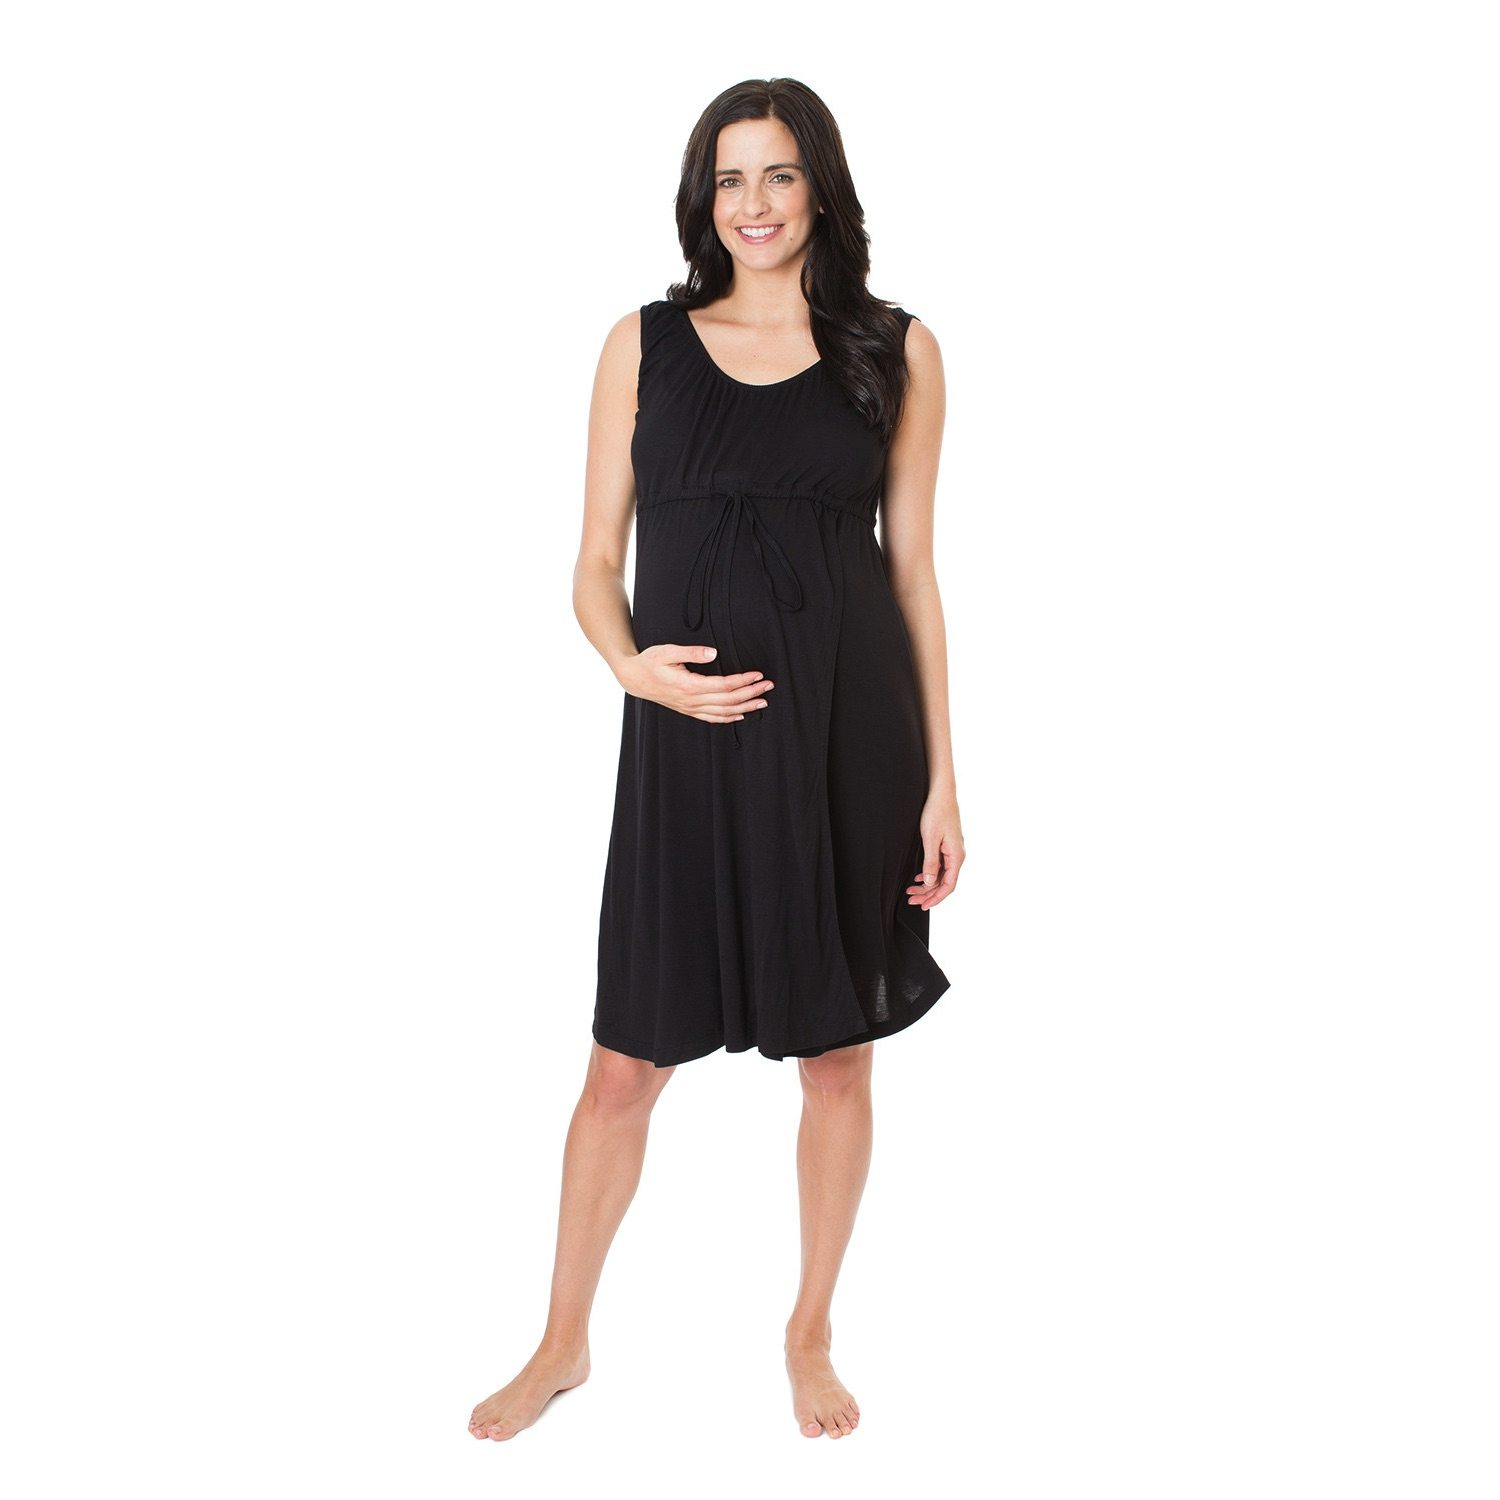 Simply Black 3 in 1 Labour, Delivery & Nursing Gown | DueSoon Australia